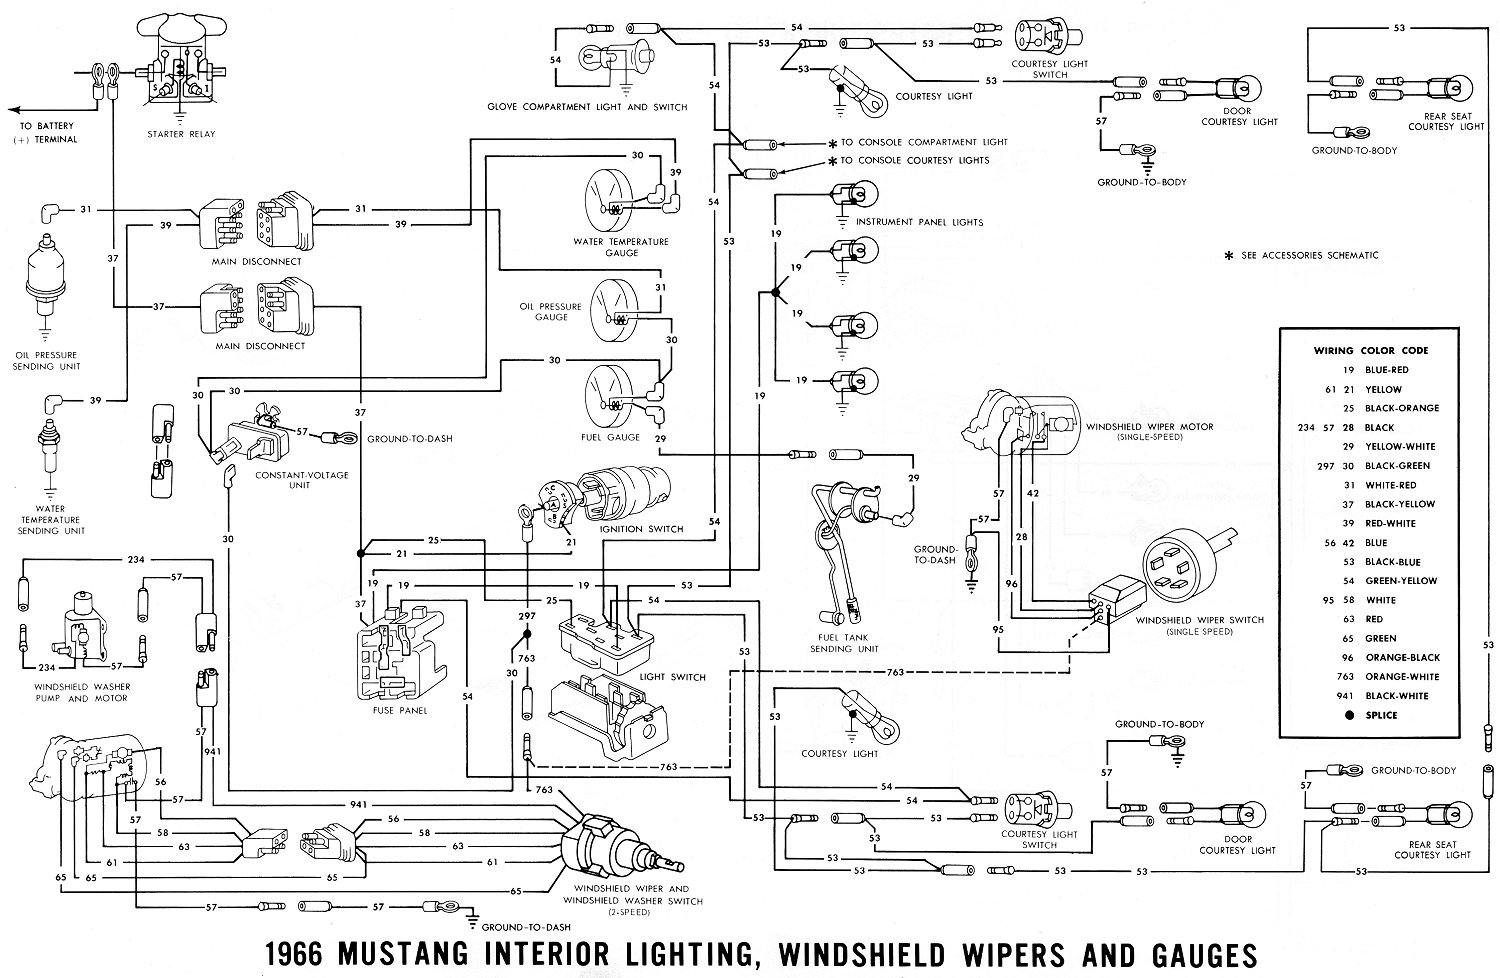 66inter1 1966 mustang wiring diagrams average joe restoration wiring diagram 1968 ford mustang coupe at bayanpartner.co